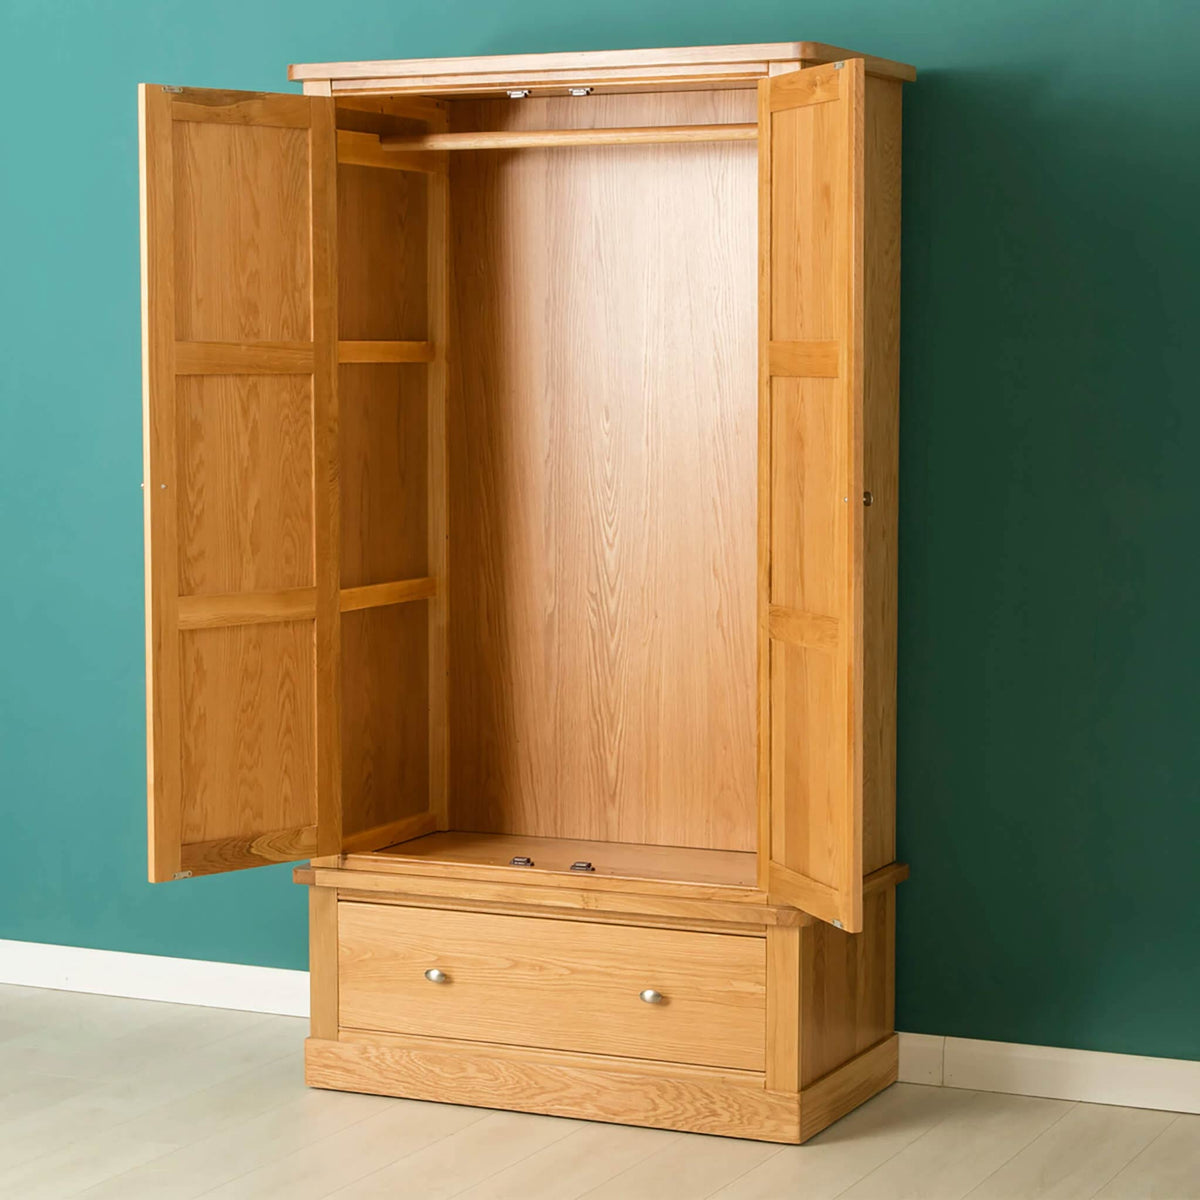 Hampshire Oak Double Wardrobe with Drawer - Lifestyle side view